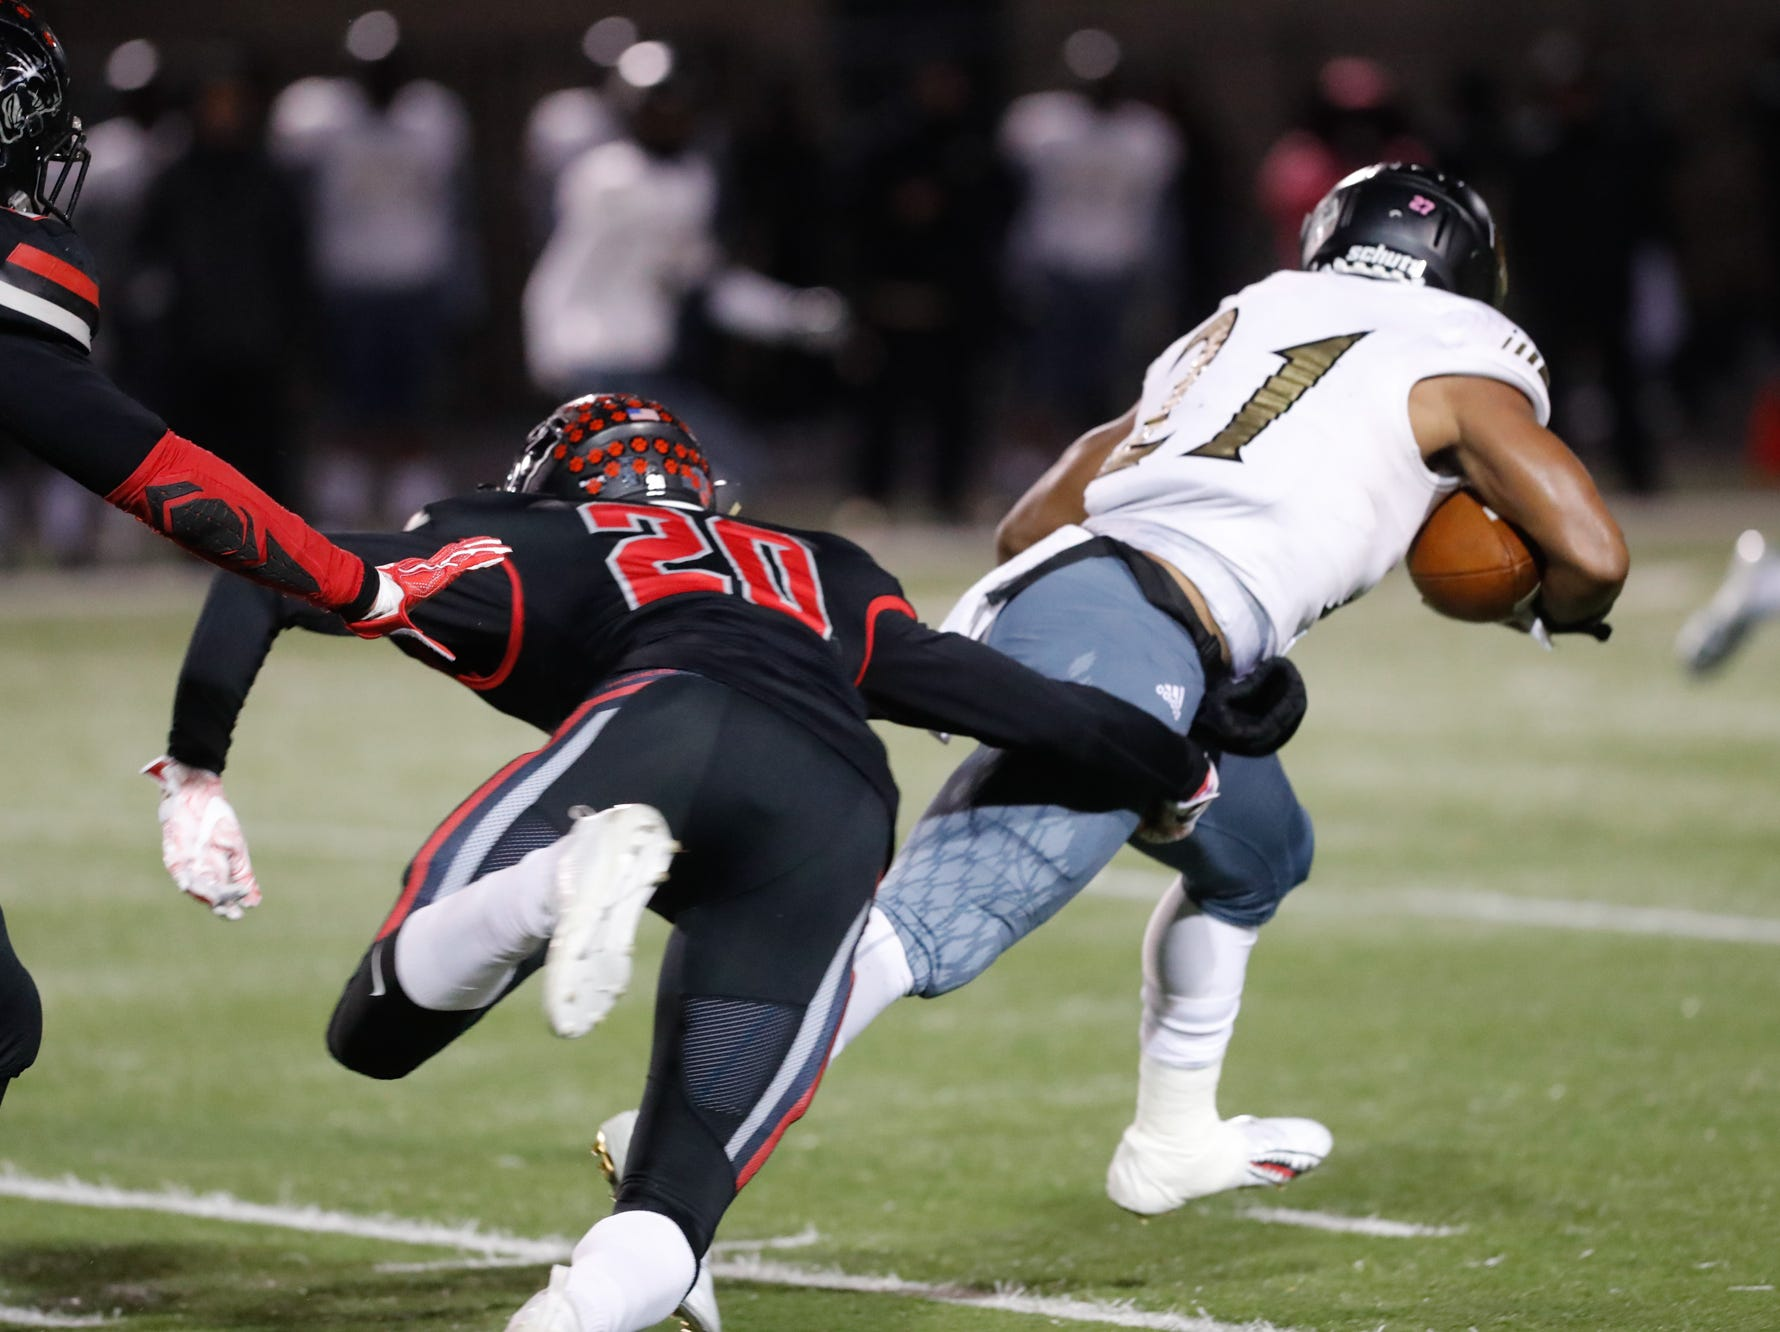 Warren Central High School Warriors Romeir Elliott (21), carries the ball past the North Central High School Panthers free safety Michael Brown (20), during a regional finals game at North Central High School on Friday, Nov. 9, 2018.